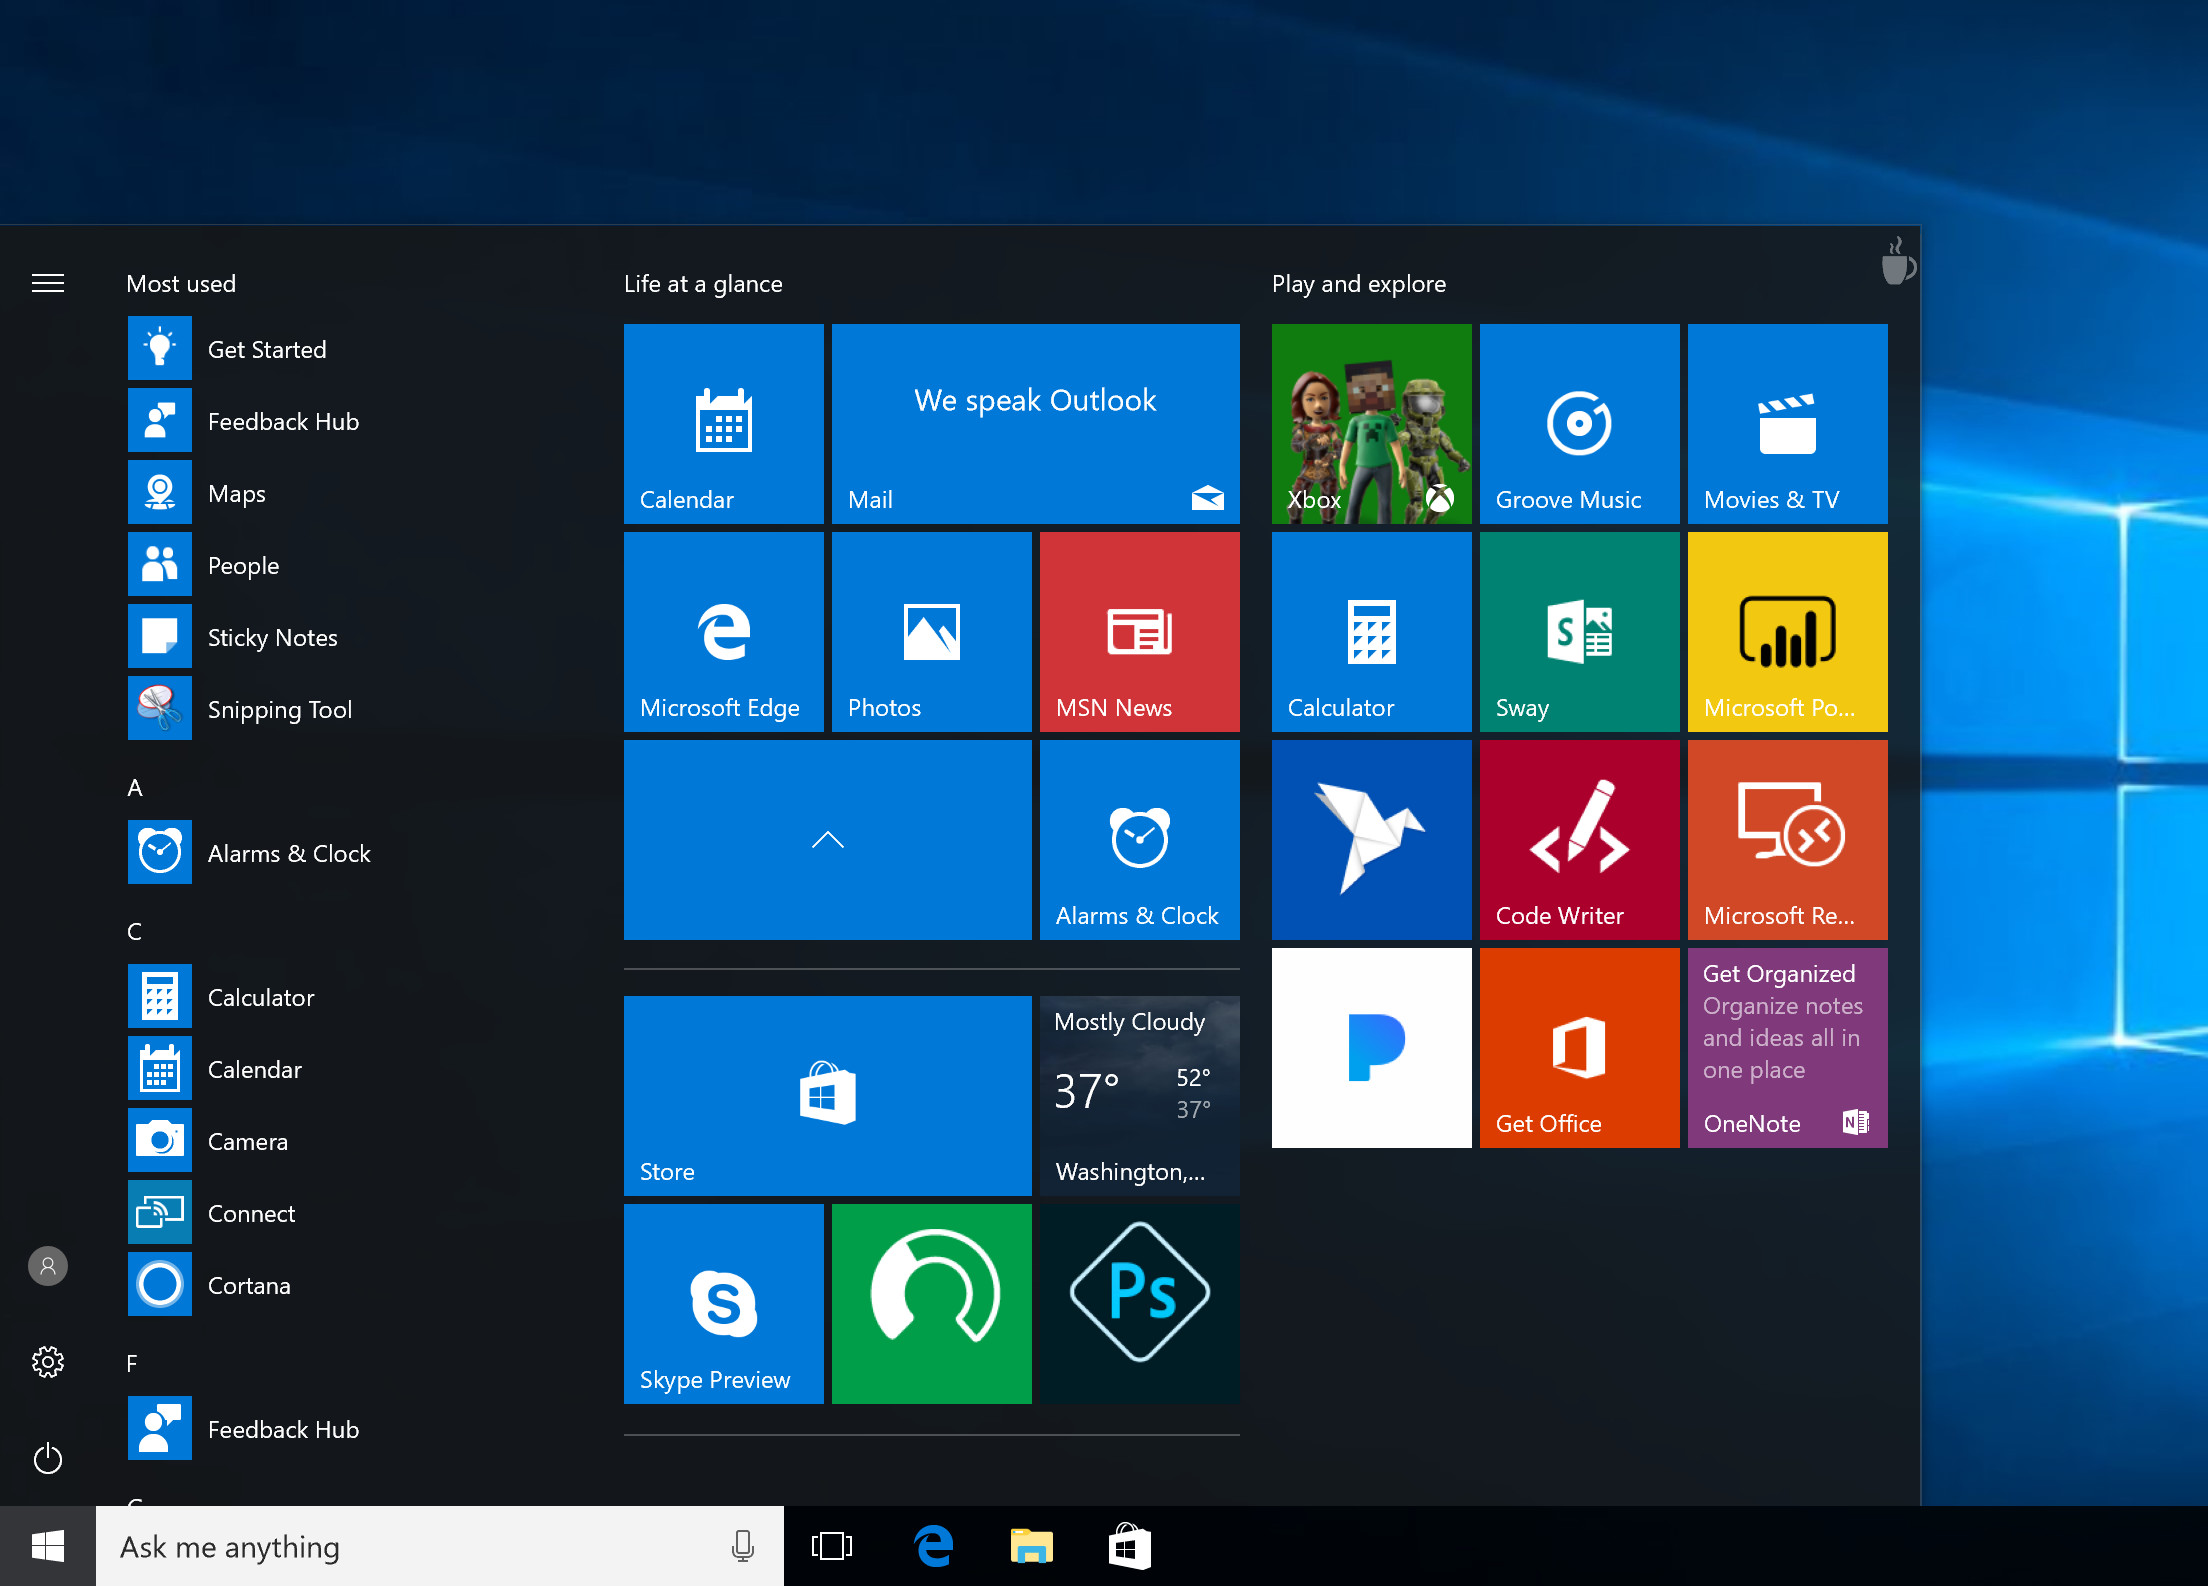 Opinion: Windows 10's live tiles are vestigial, they need to evolve or die  – MSPoweruser